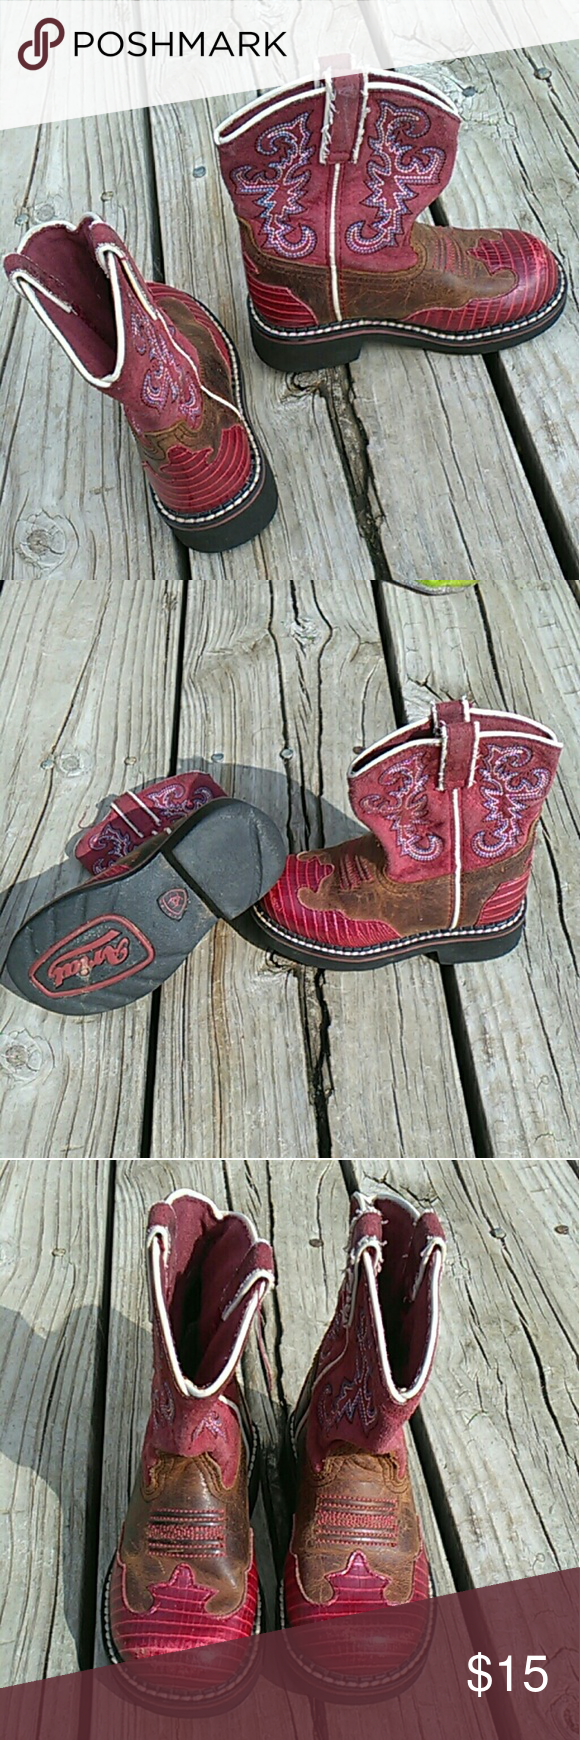 Girls Ariat Boots Girls Red Ariat Round Toe Boots.  Excellent  pre loved condition.  Only used a handful of times before she grew out of these.  Toddler size 8.5 No trades.  Offers accepted through offer button only. Ariat Shoes Boots